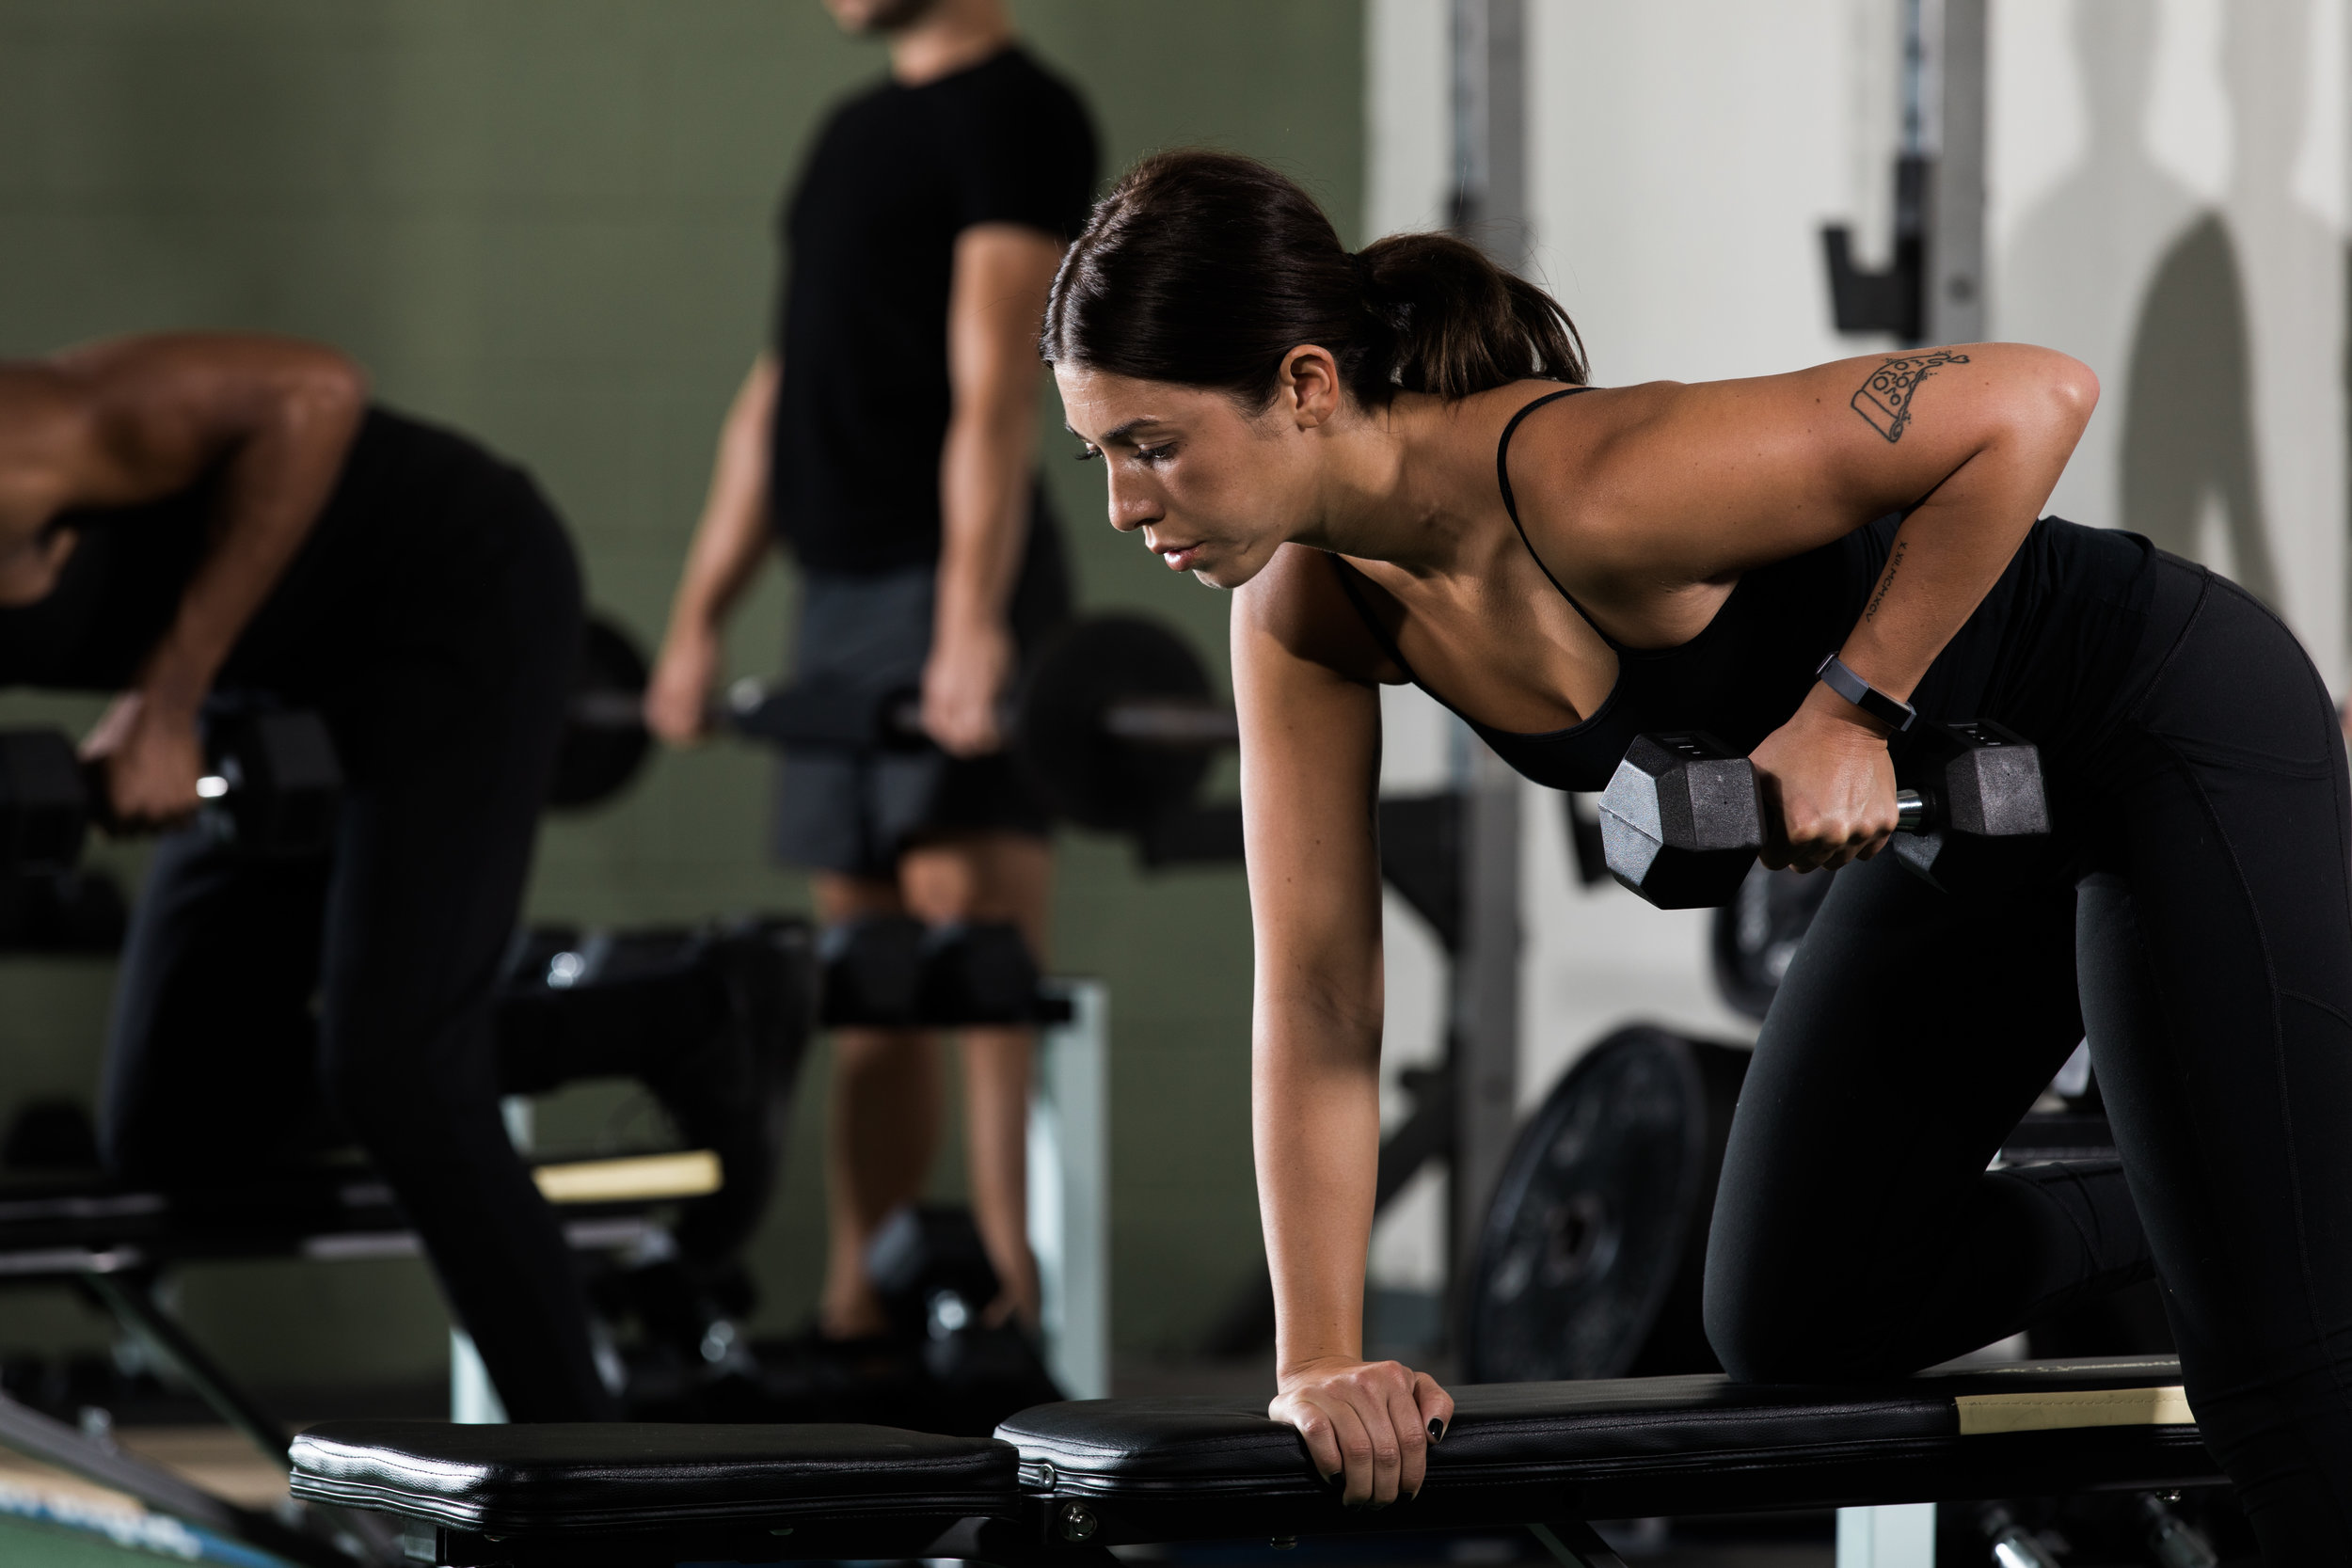 PRIVATE GROUP TRAINING - 6 WEEK PROGRAM   One Time Payment  Features: 2 Classes per Week, Access to App Reservation, Fitmetrix Heart Rate Tracking, 1 Complimentary Personal Training Session (30 Minutes), 1 Complimentary Nutrition Coaching Session (30 Minutes)